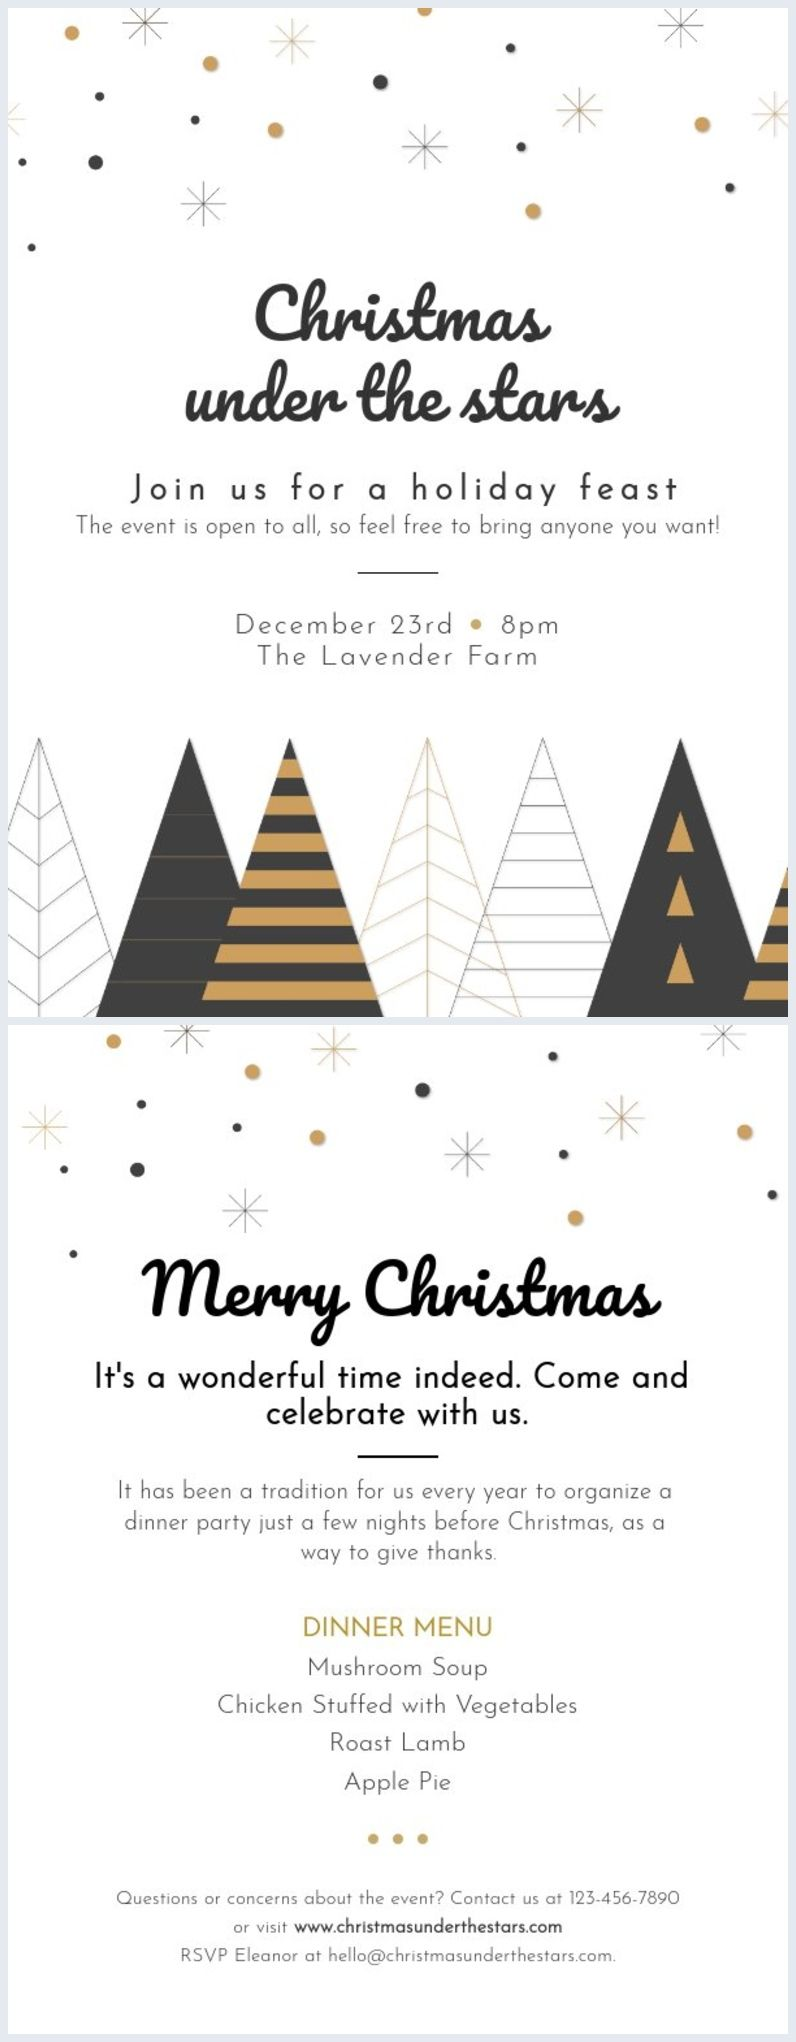 Minimalist Christmas Party Flyer Template Christmas Poster Design Christmas Card Design Christmas Invitation Card